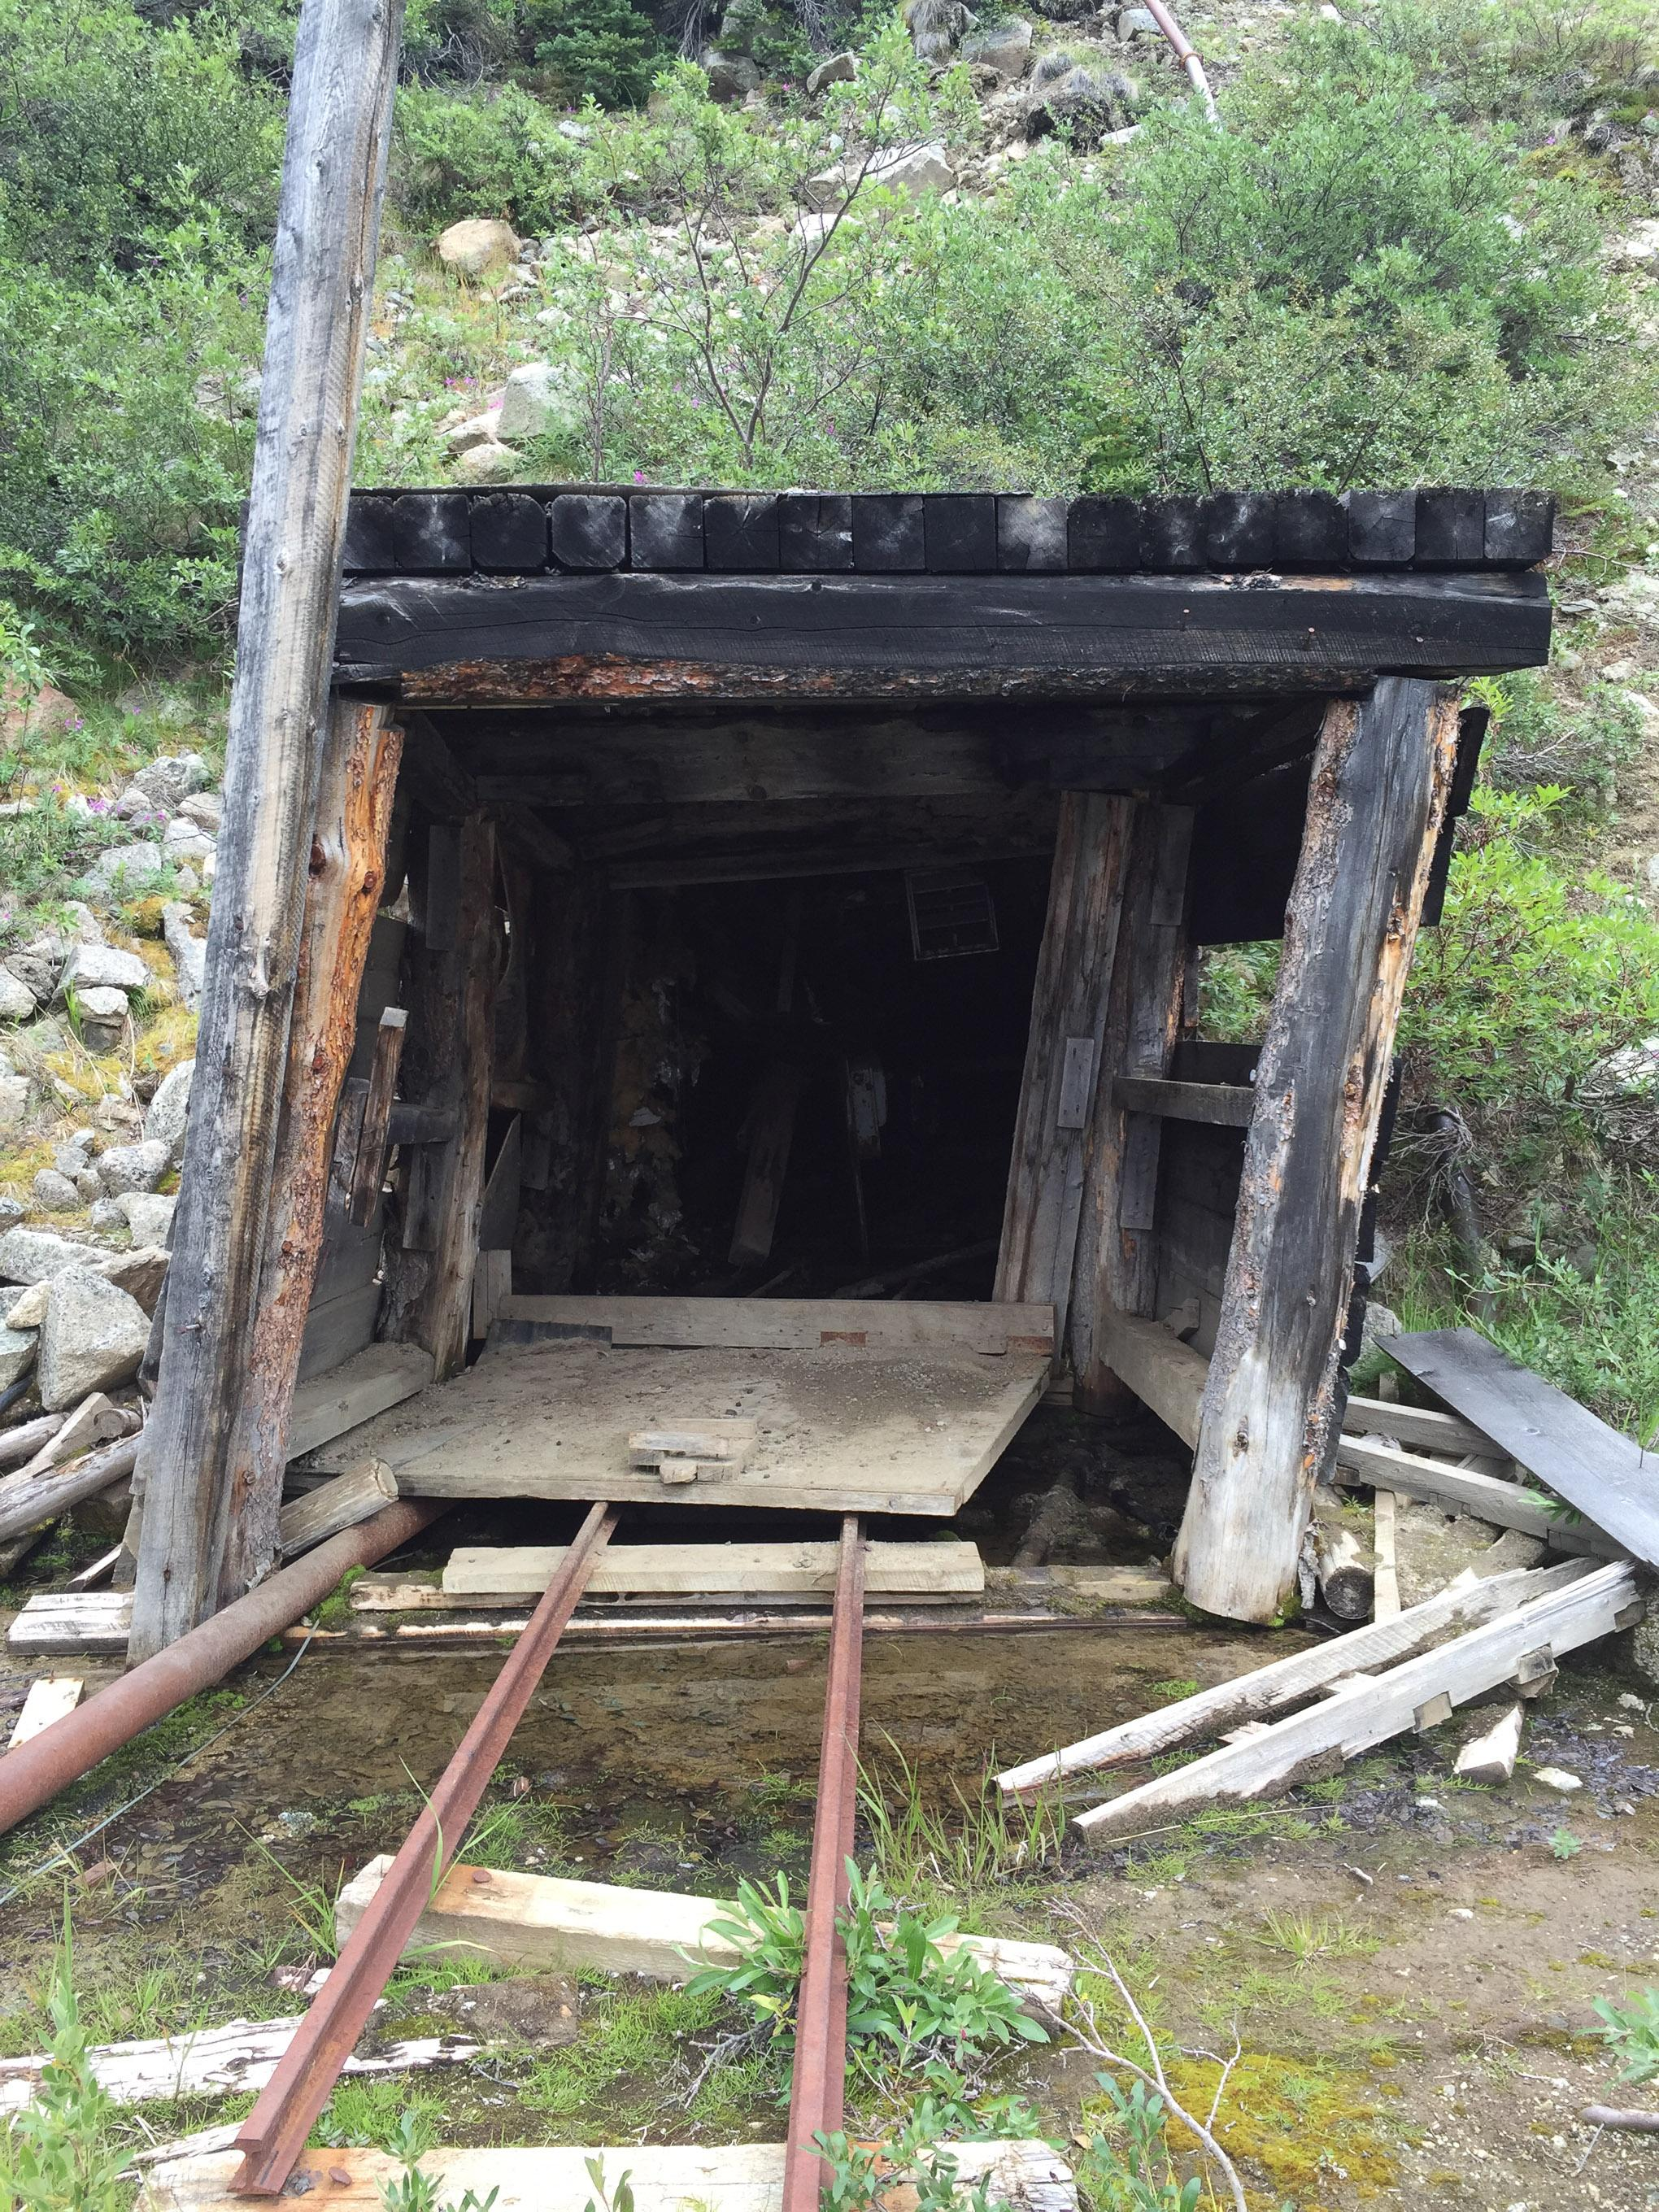 atlin dating site 12 kms southeast of atlin in northwestern british columbia  its confluence with  dominion creek at the site of the historic nolan mine in the atlin mining district   although the total placer gold production from the area to date is not available,.